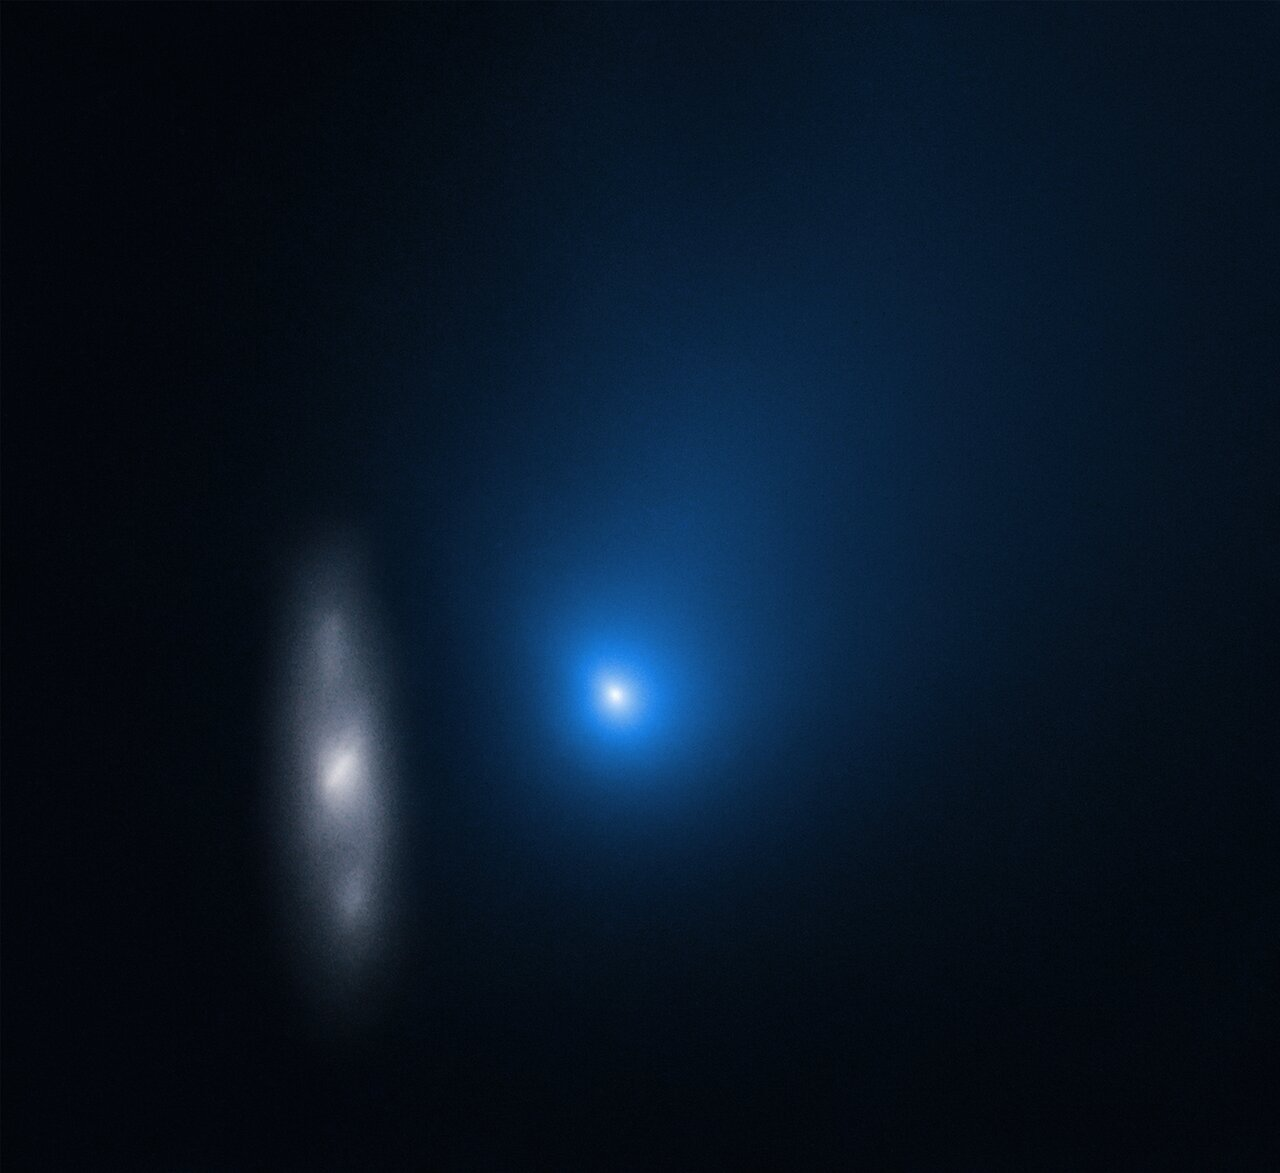 Comet 2I/Borisov and Distant Galaxy in November 2019